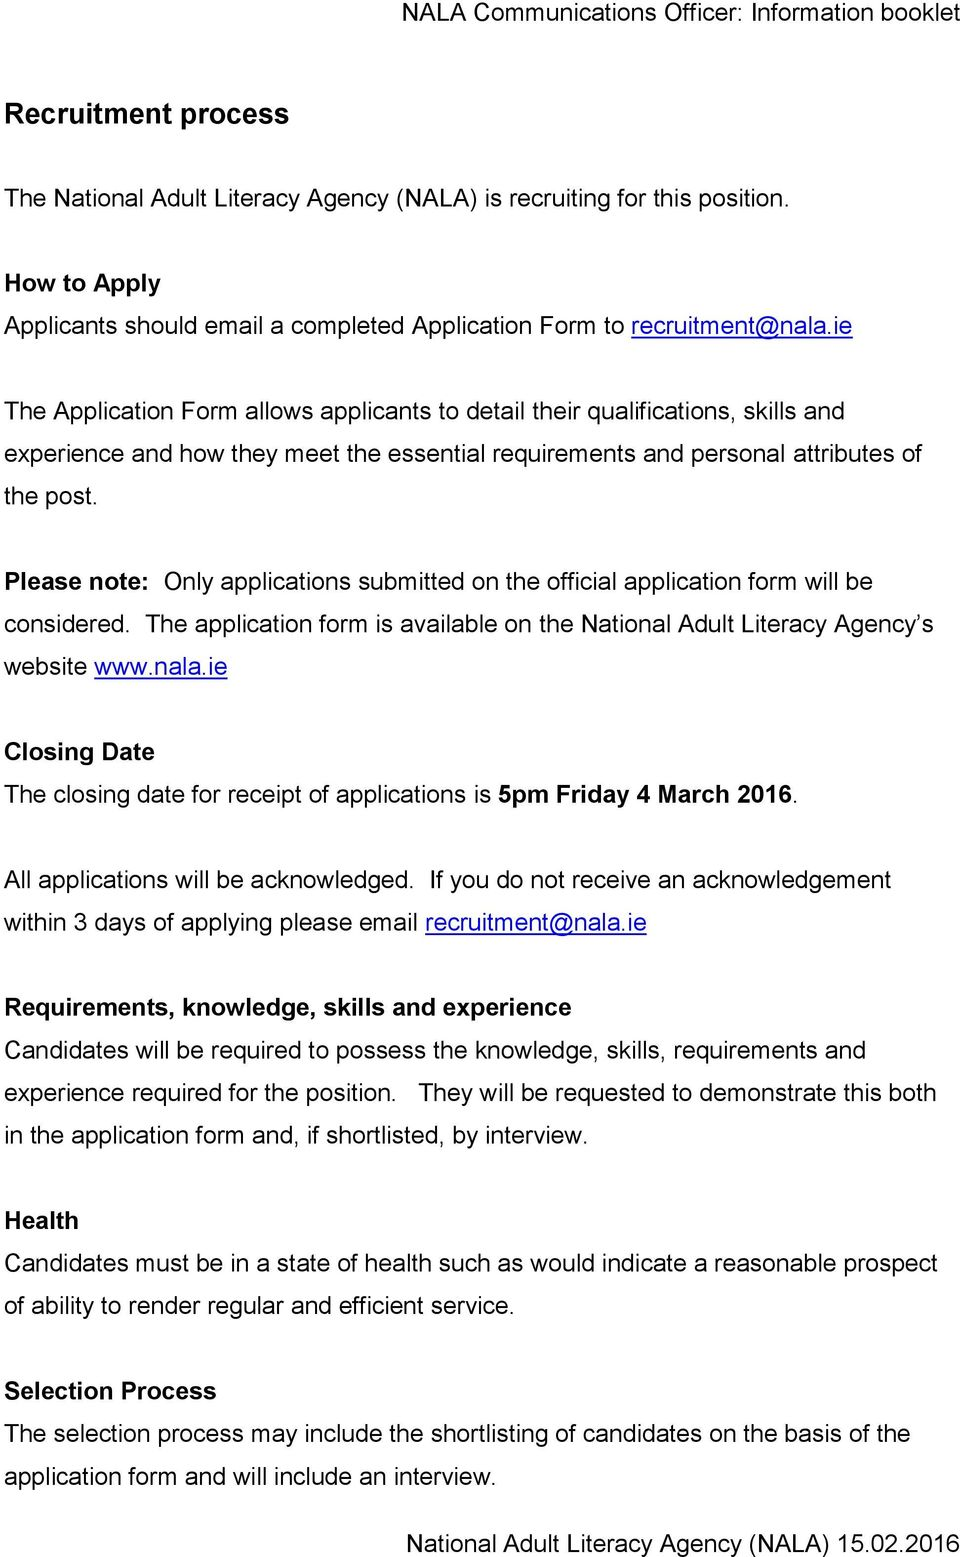 Please note: Only applications submitted on the official application form will be considered. The application form is available on the National Adult Literacy Agency s website www.nala.